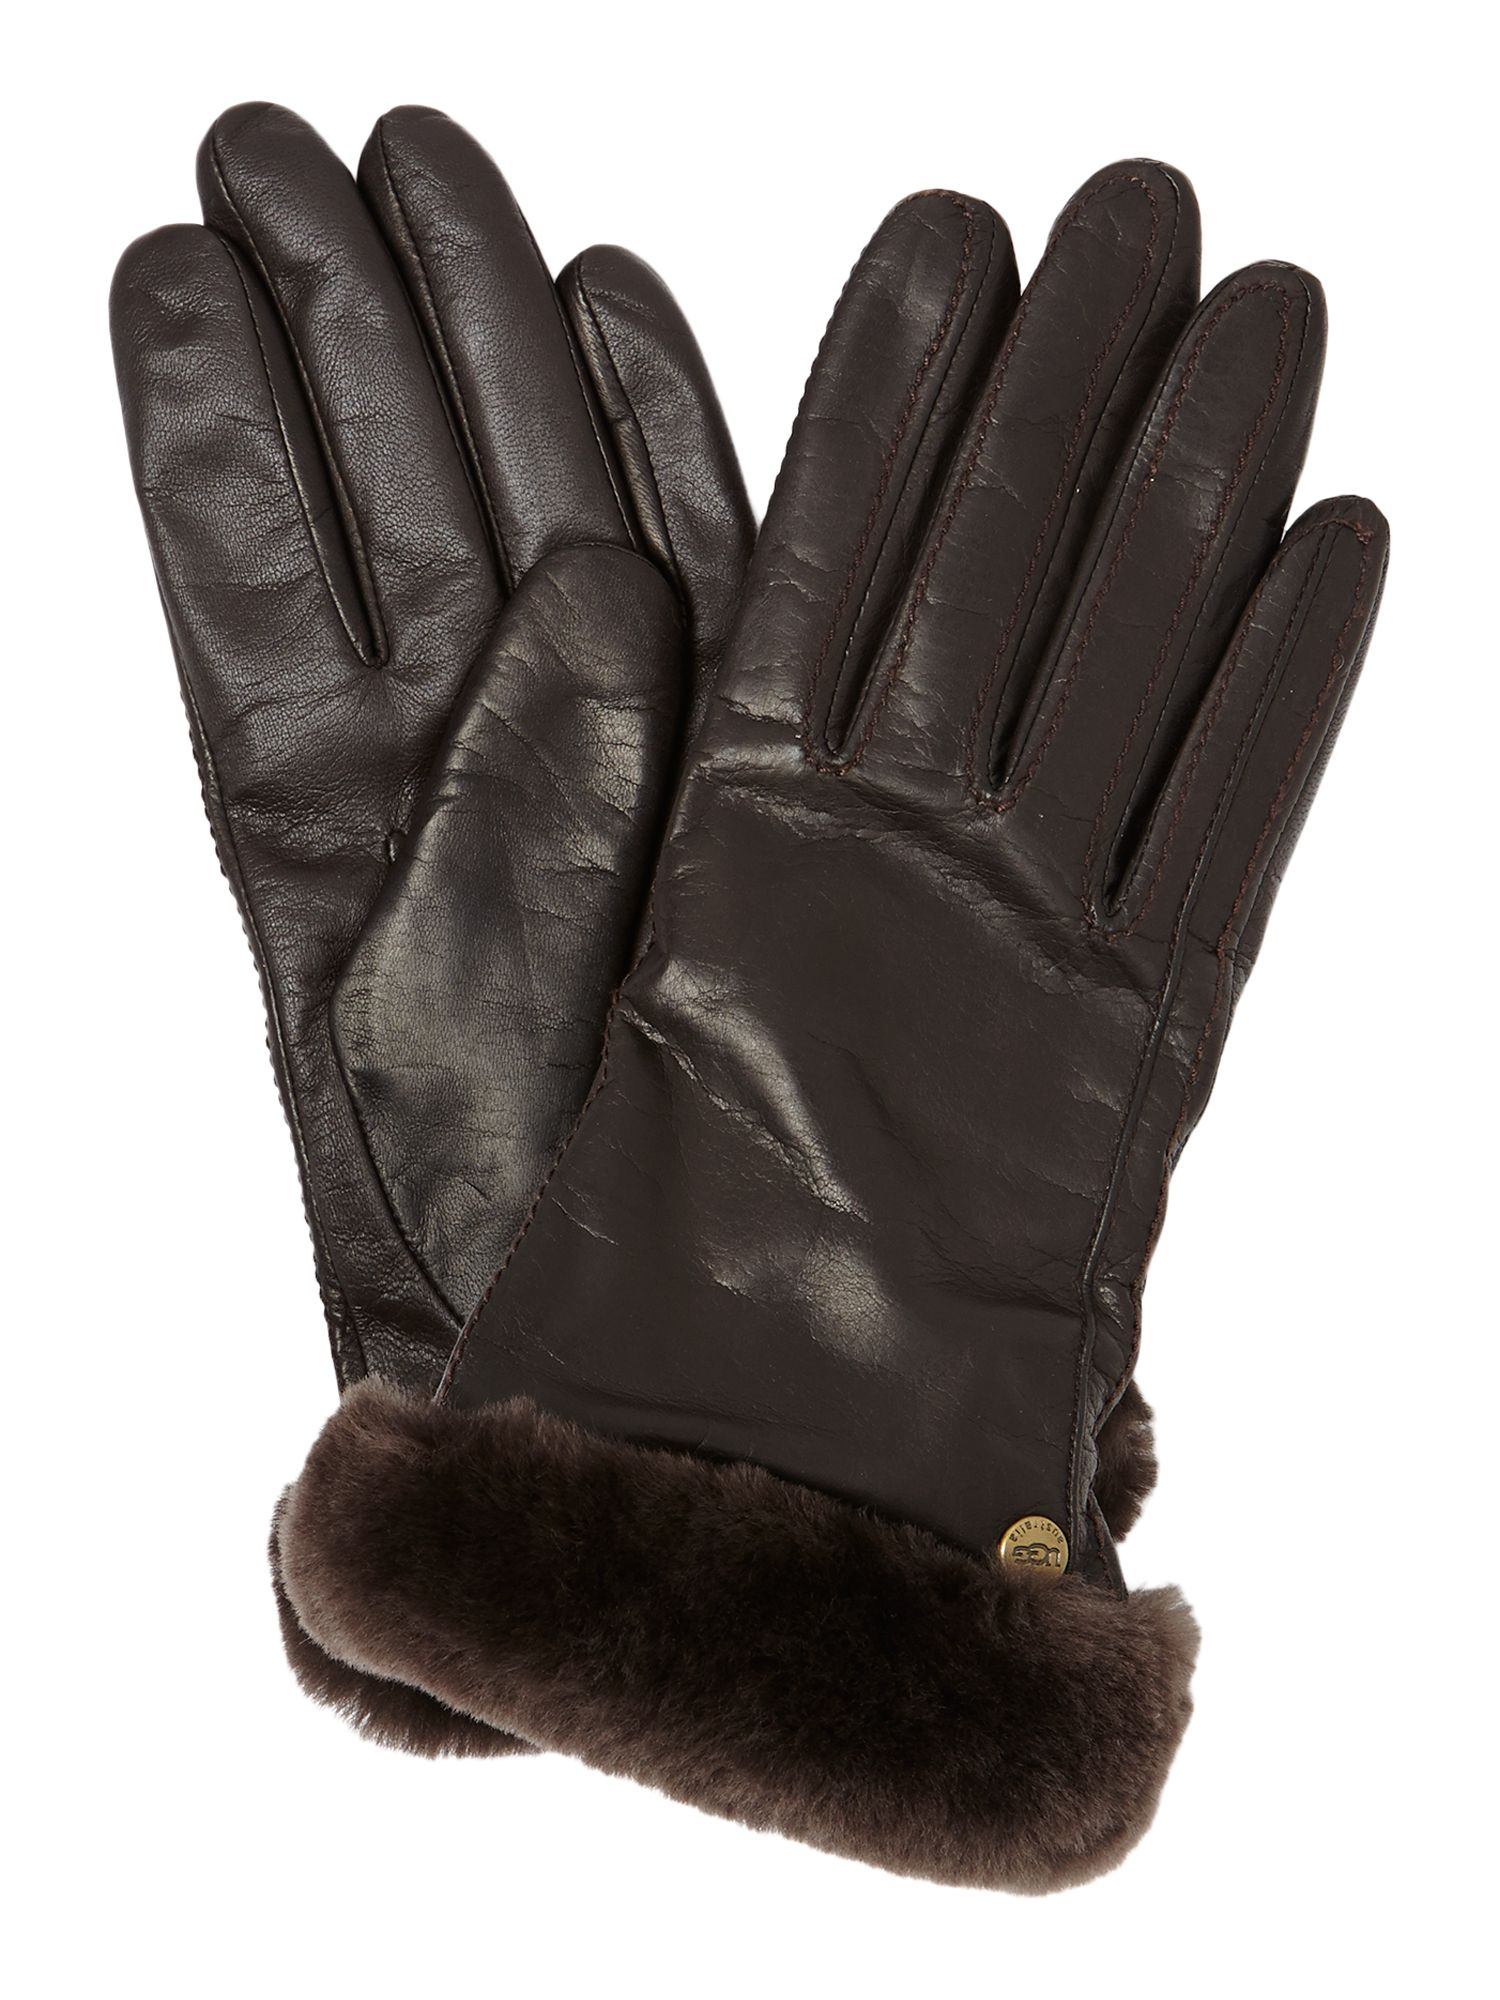 Classic leather touch screen glove